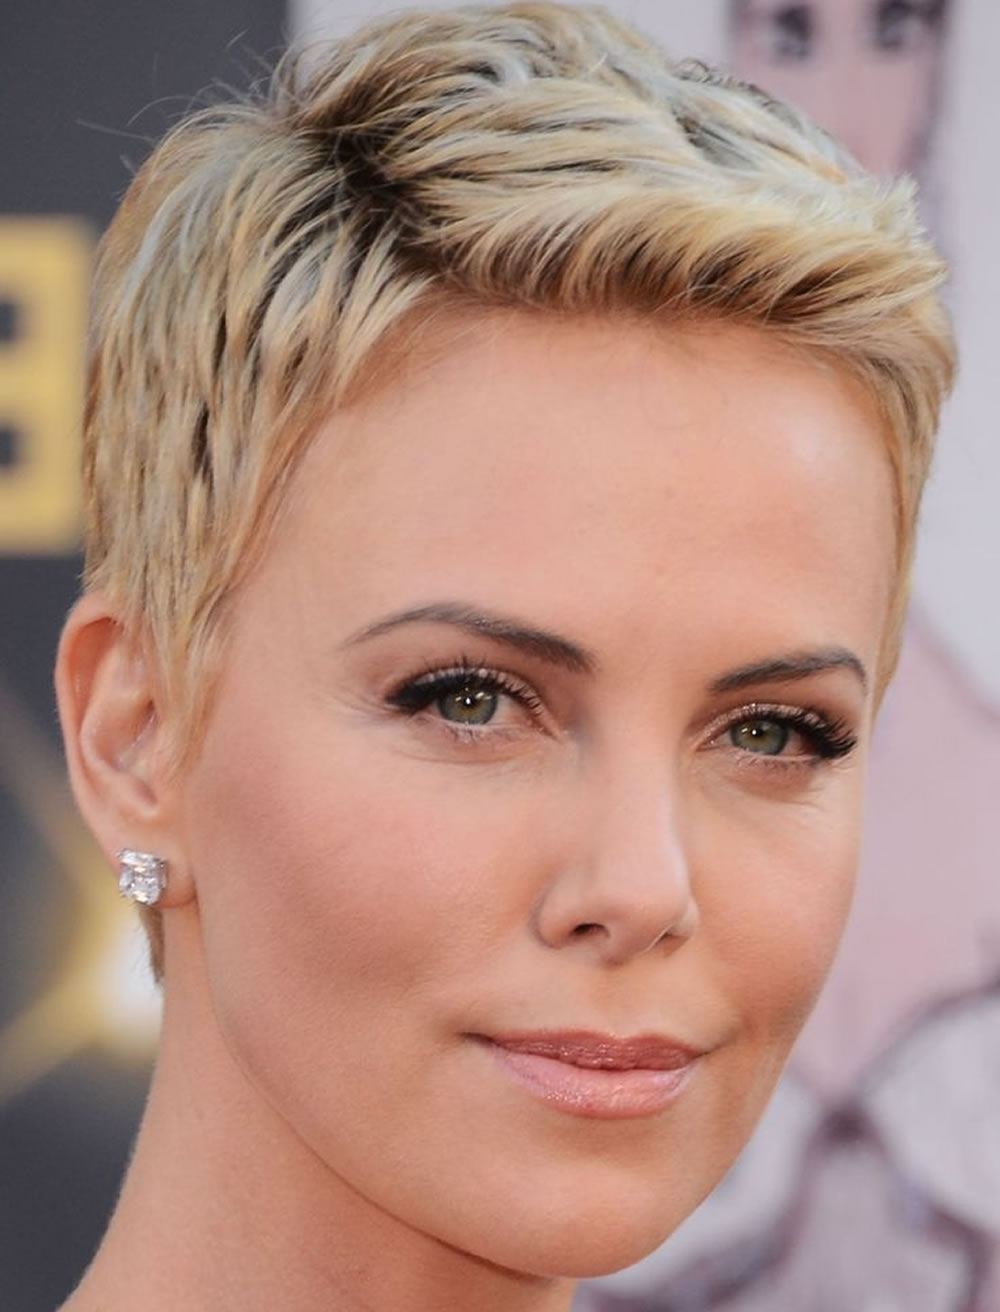 15 Best Collection Of Short Pixie Hairstyles For Women Over 40